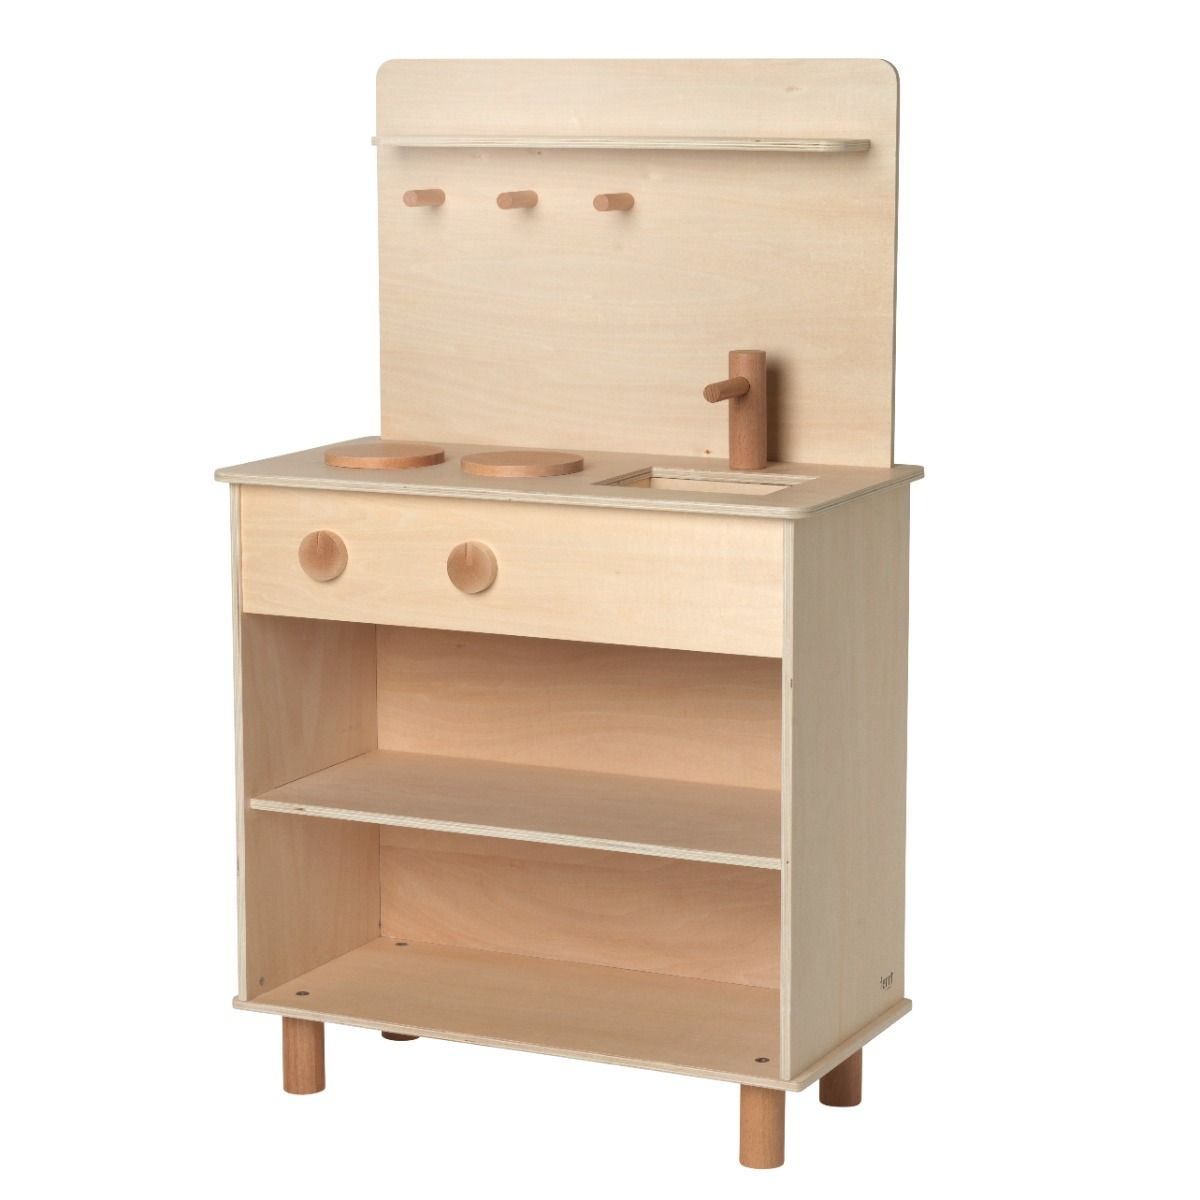 Ferm Living Toro Play Kitchen side view